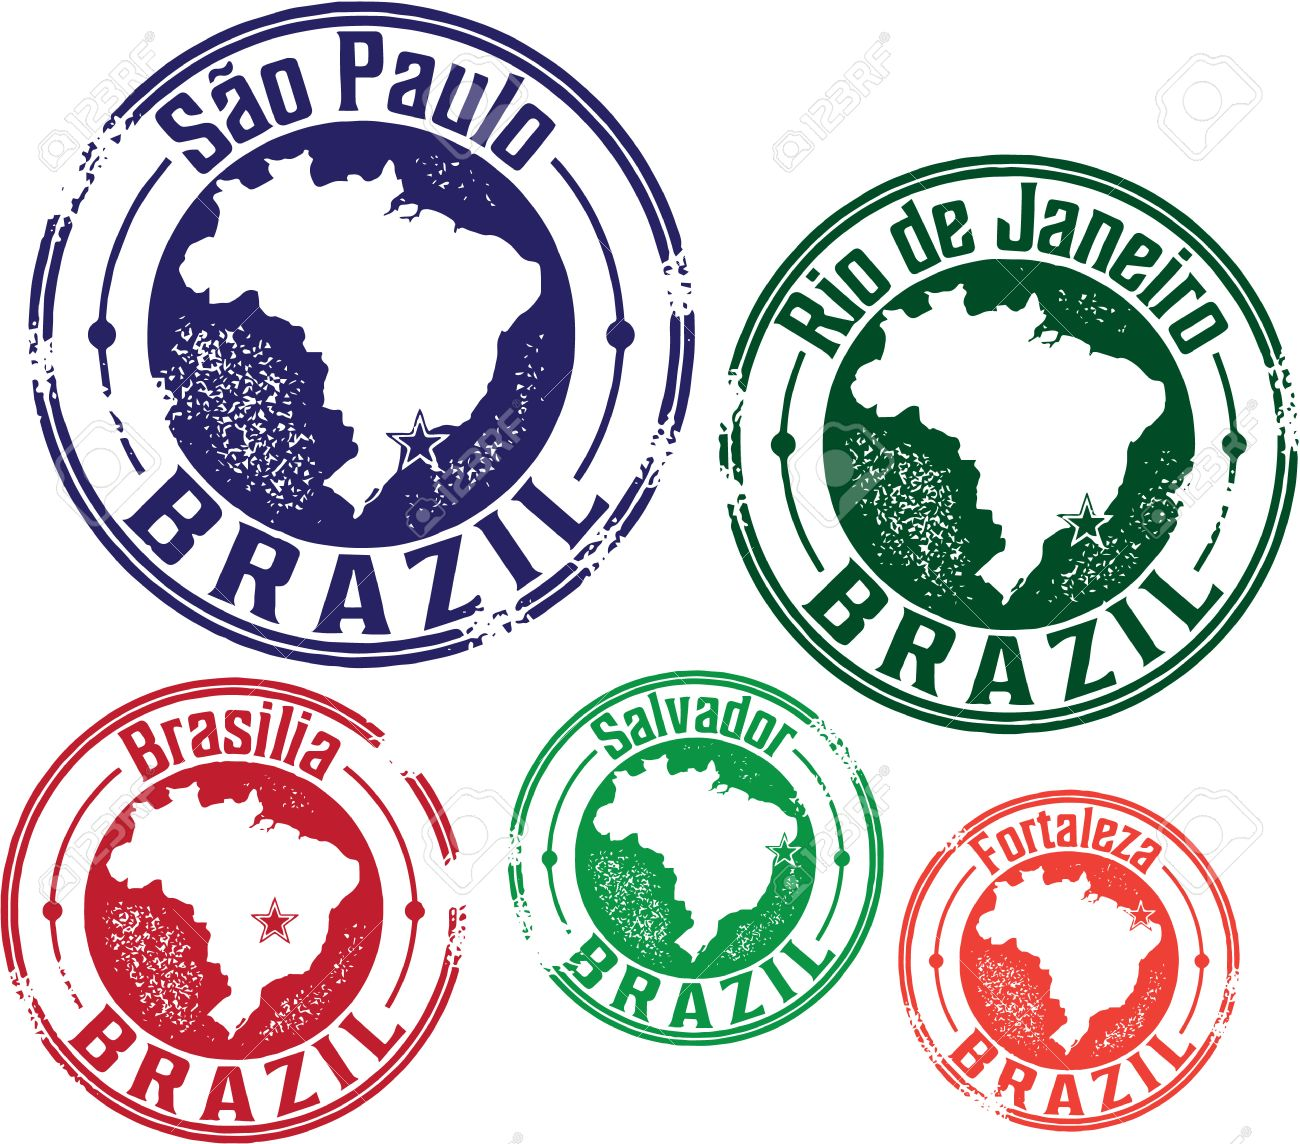 Brazil South American Travel Stamps Stock Vector